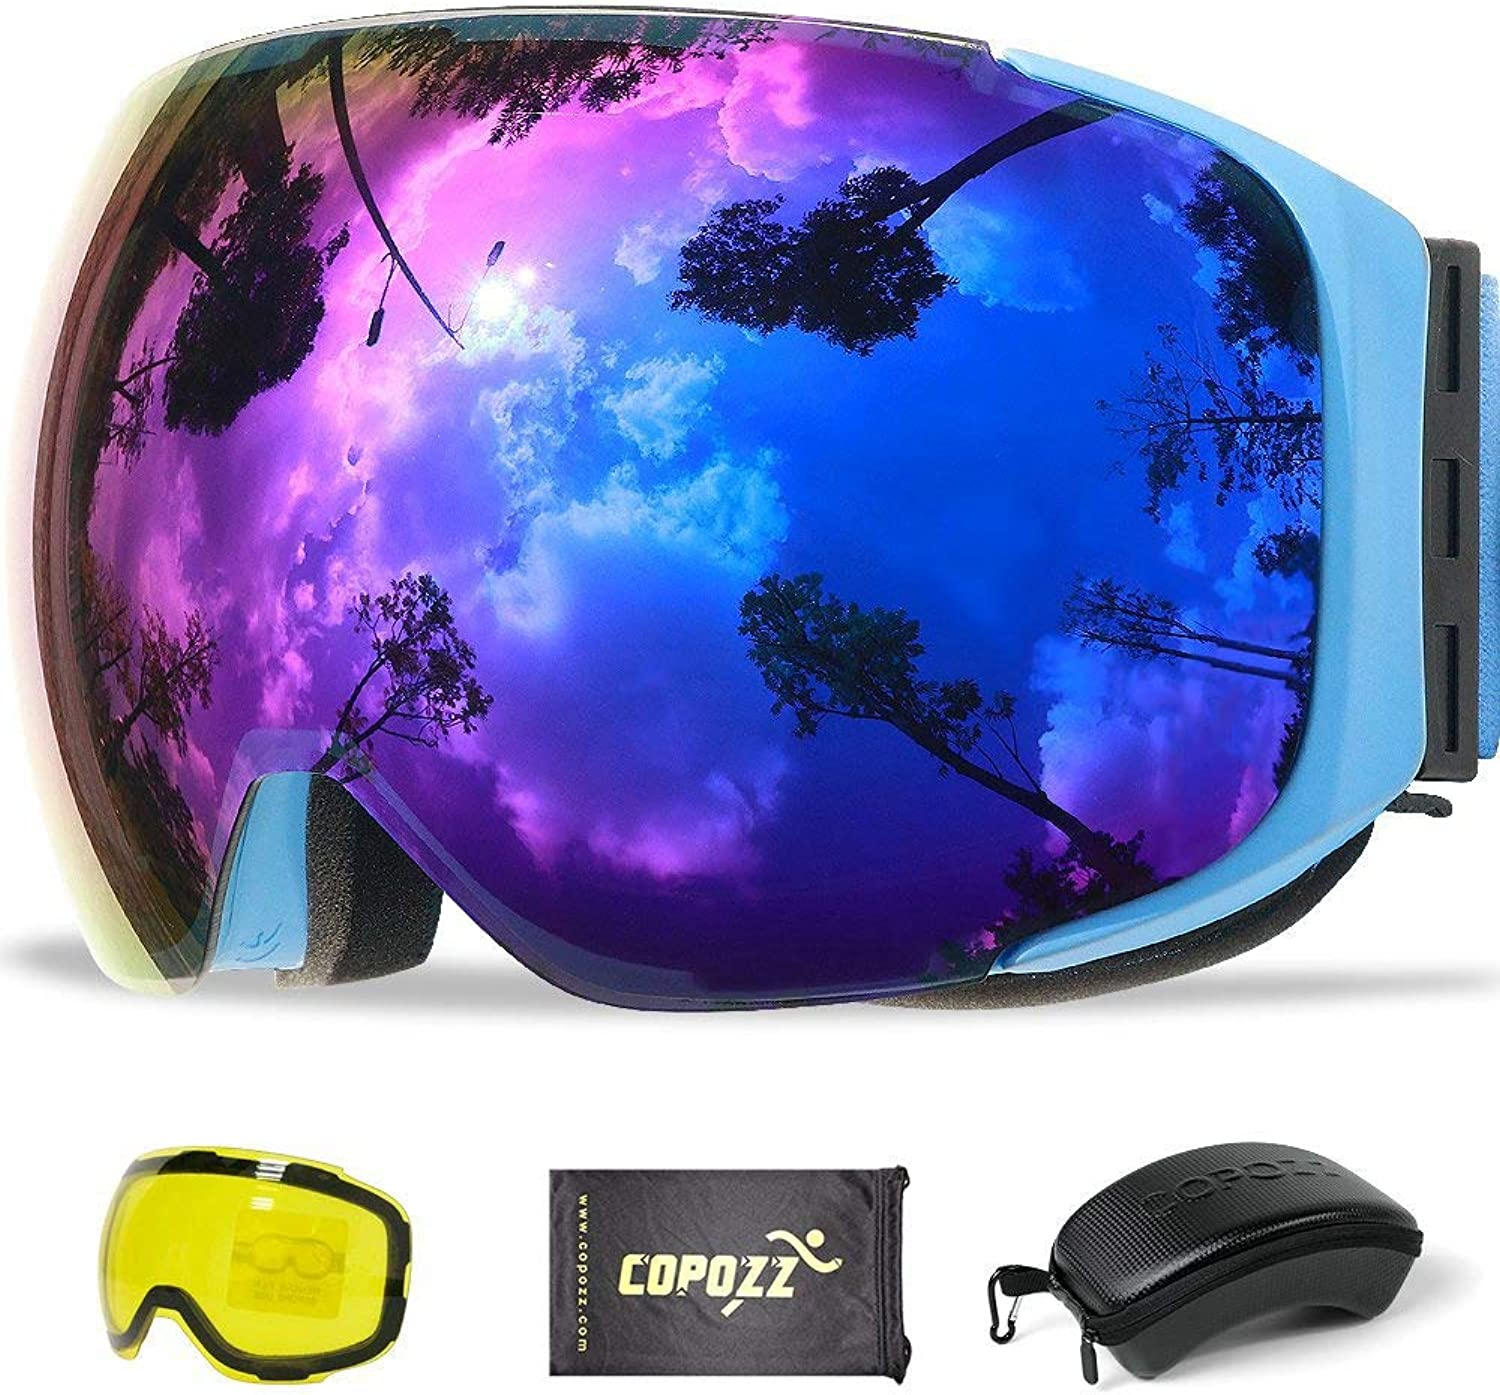 Magnetic Ski Goggles with QuickChange Lens and Case Set 100% UV400 Predection AntiFog Snowboard Goggles for Men & Women